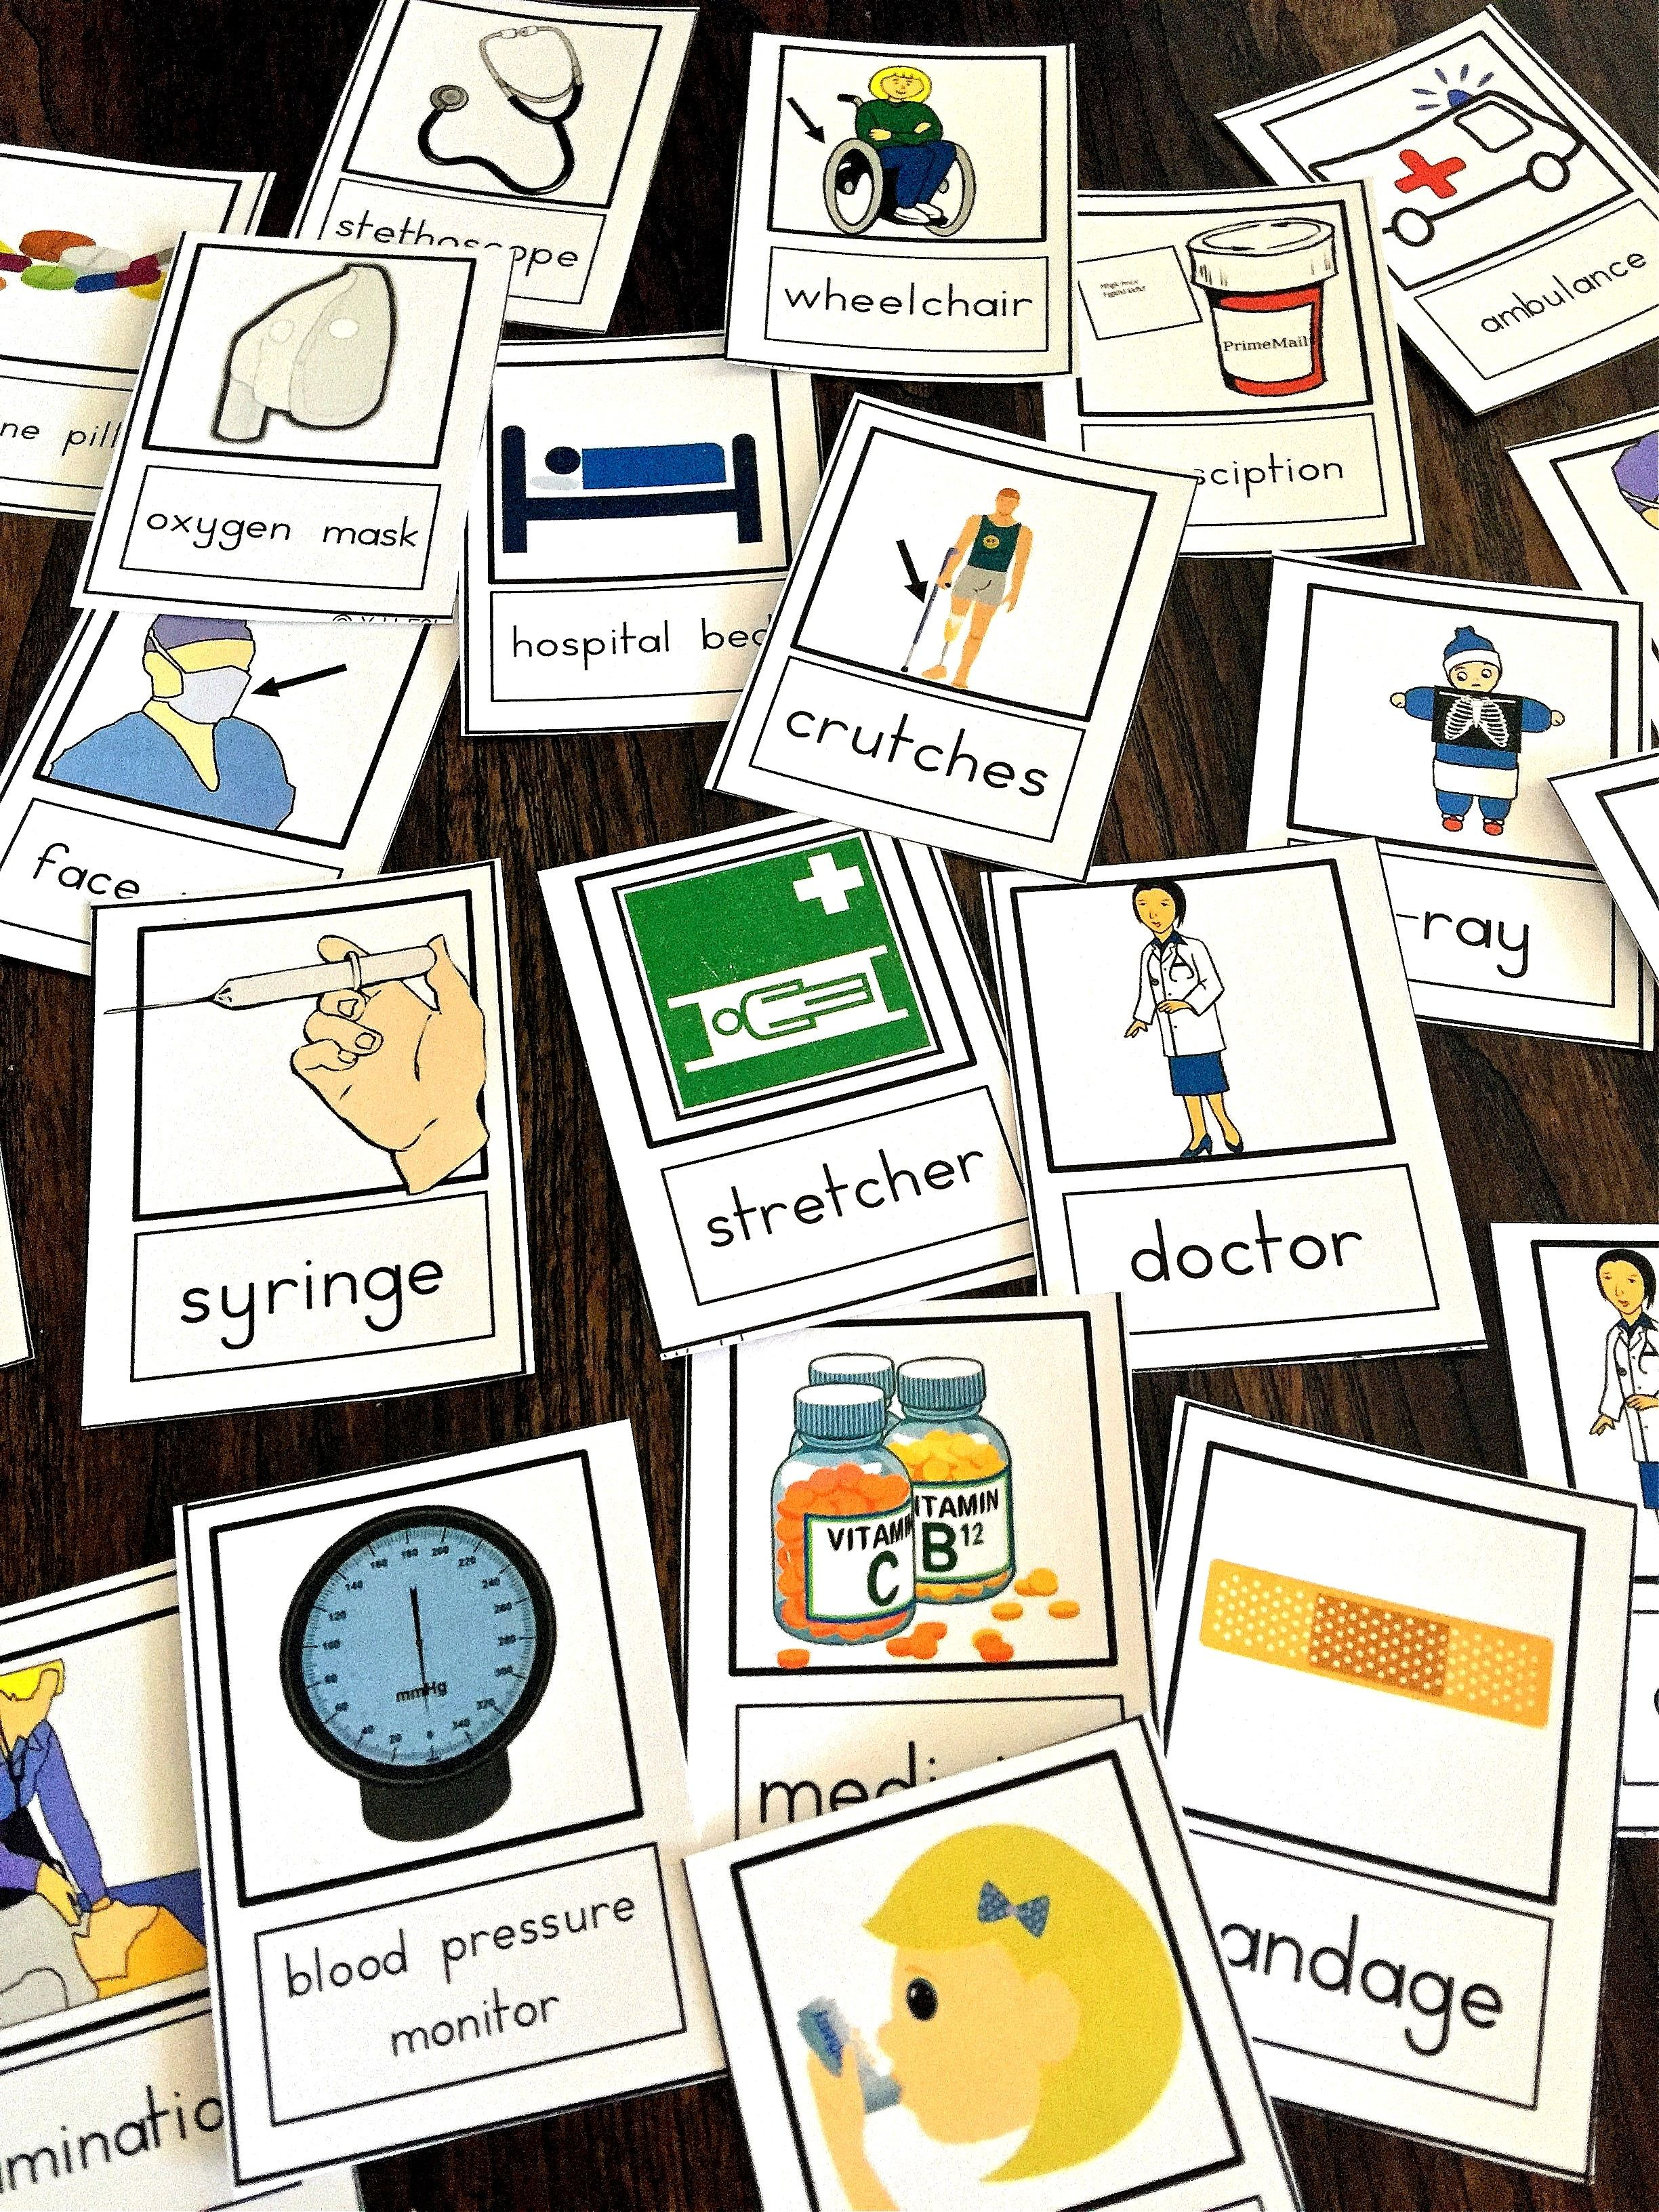 Help Your Esl Students Learn The Hospital And Medical Terminology This Set Of Flashcards Are Illustrations Of The Most Medical Terms Flashcards Visual Learning